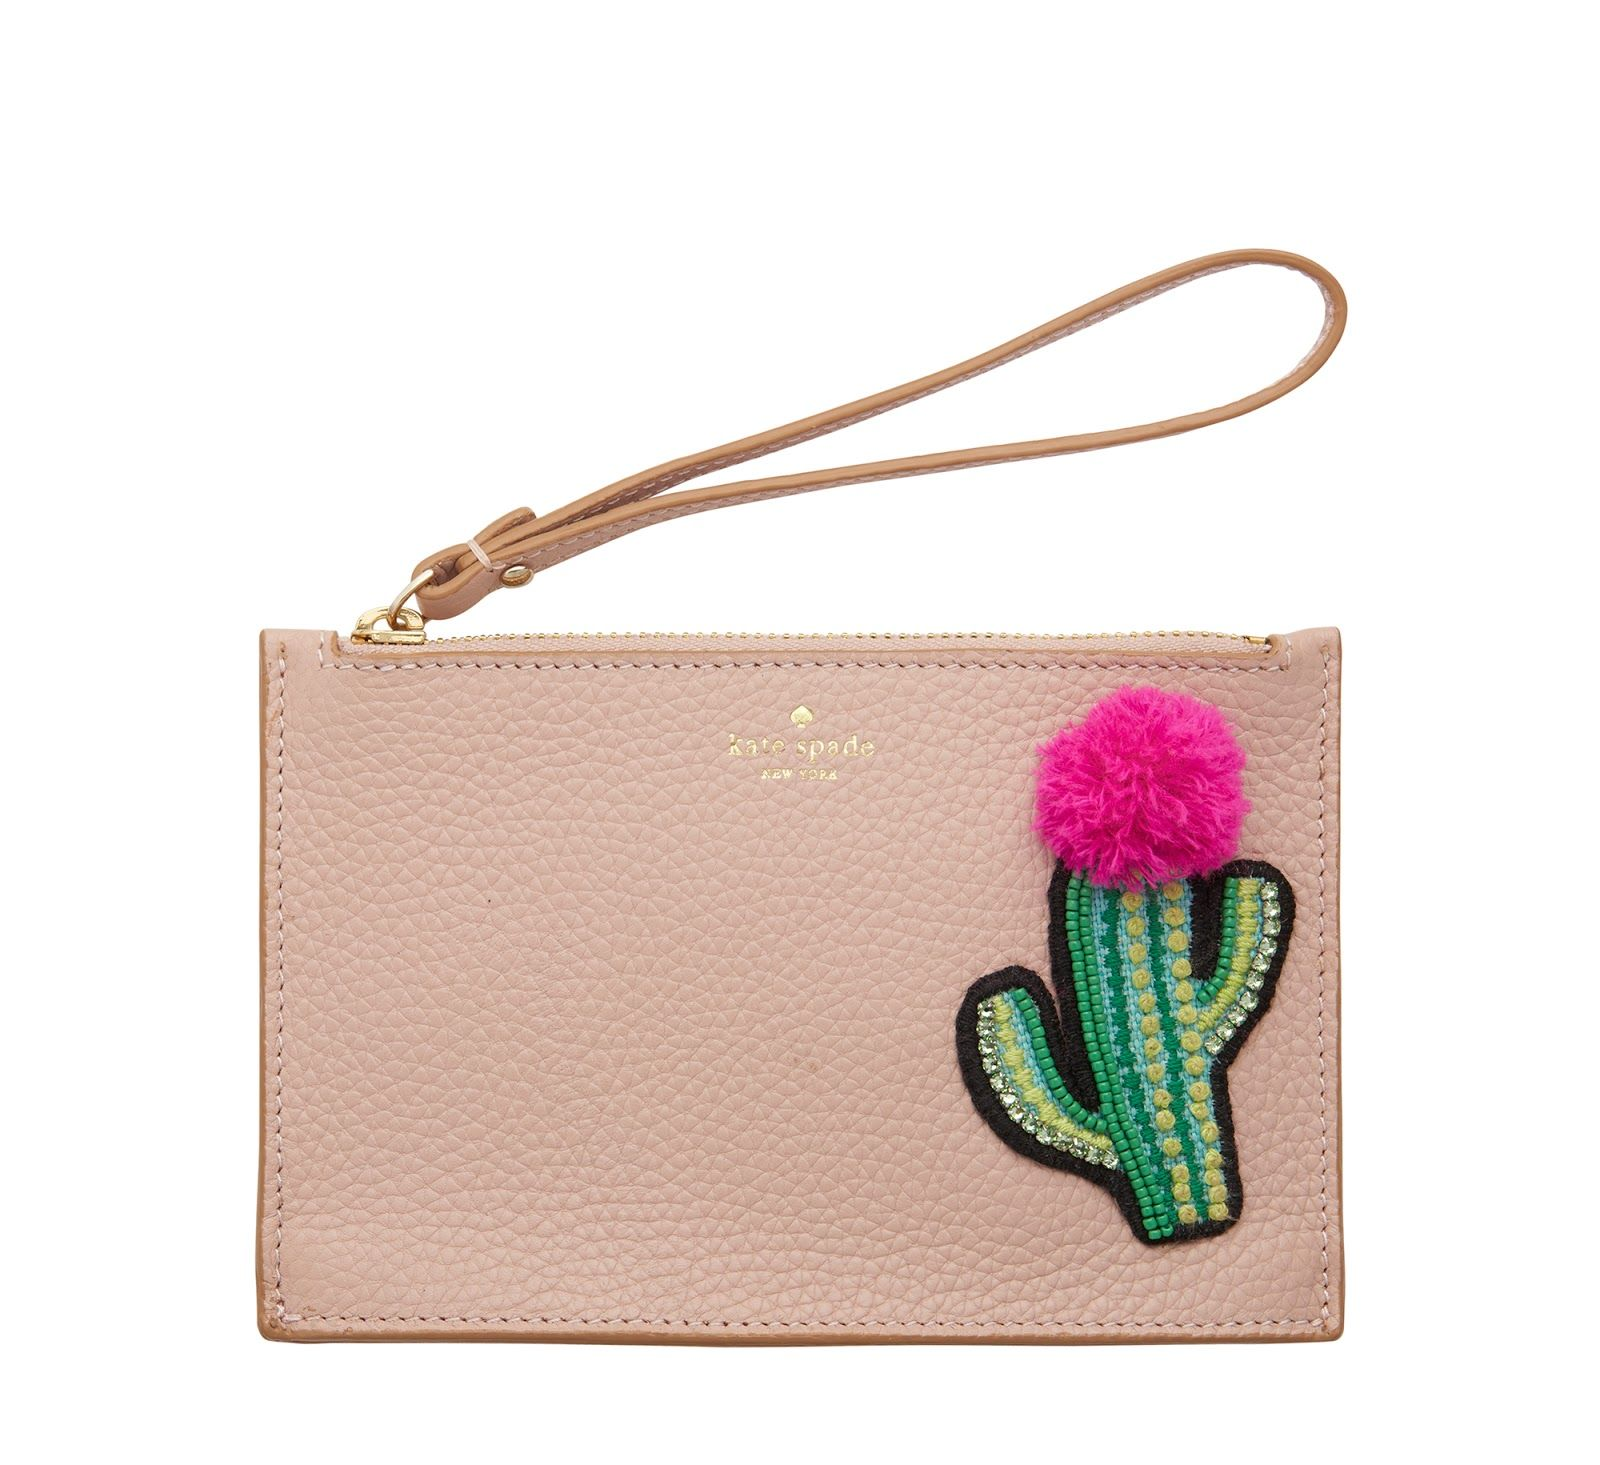 Kate Spade New York S Summer 2017 Collection Is All About Those Mexicana Vibes Inspired By One Of My Favourite Artists Ever Frida